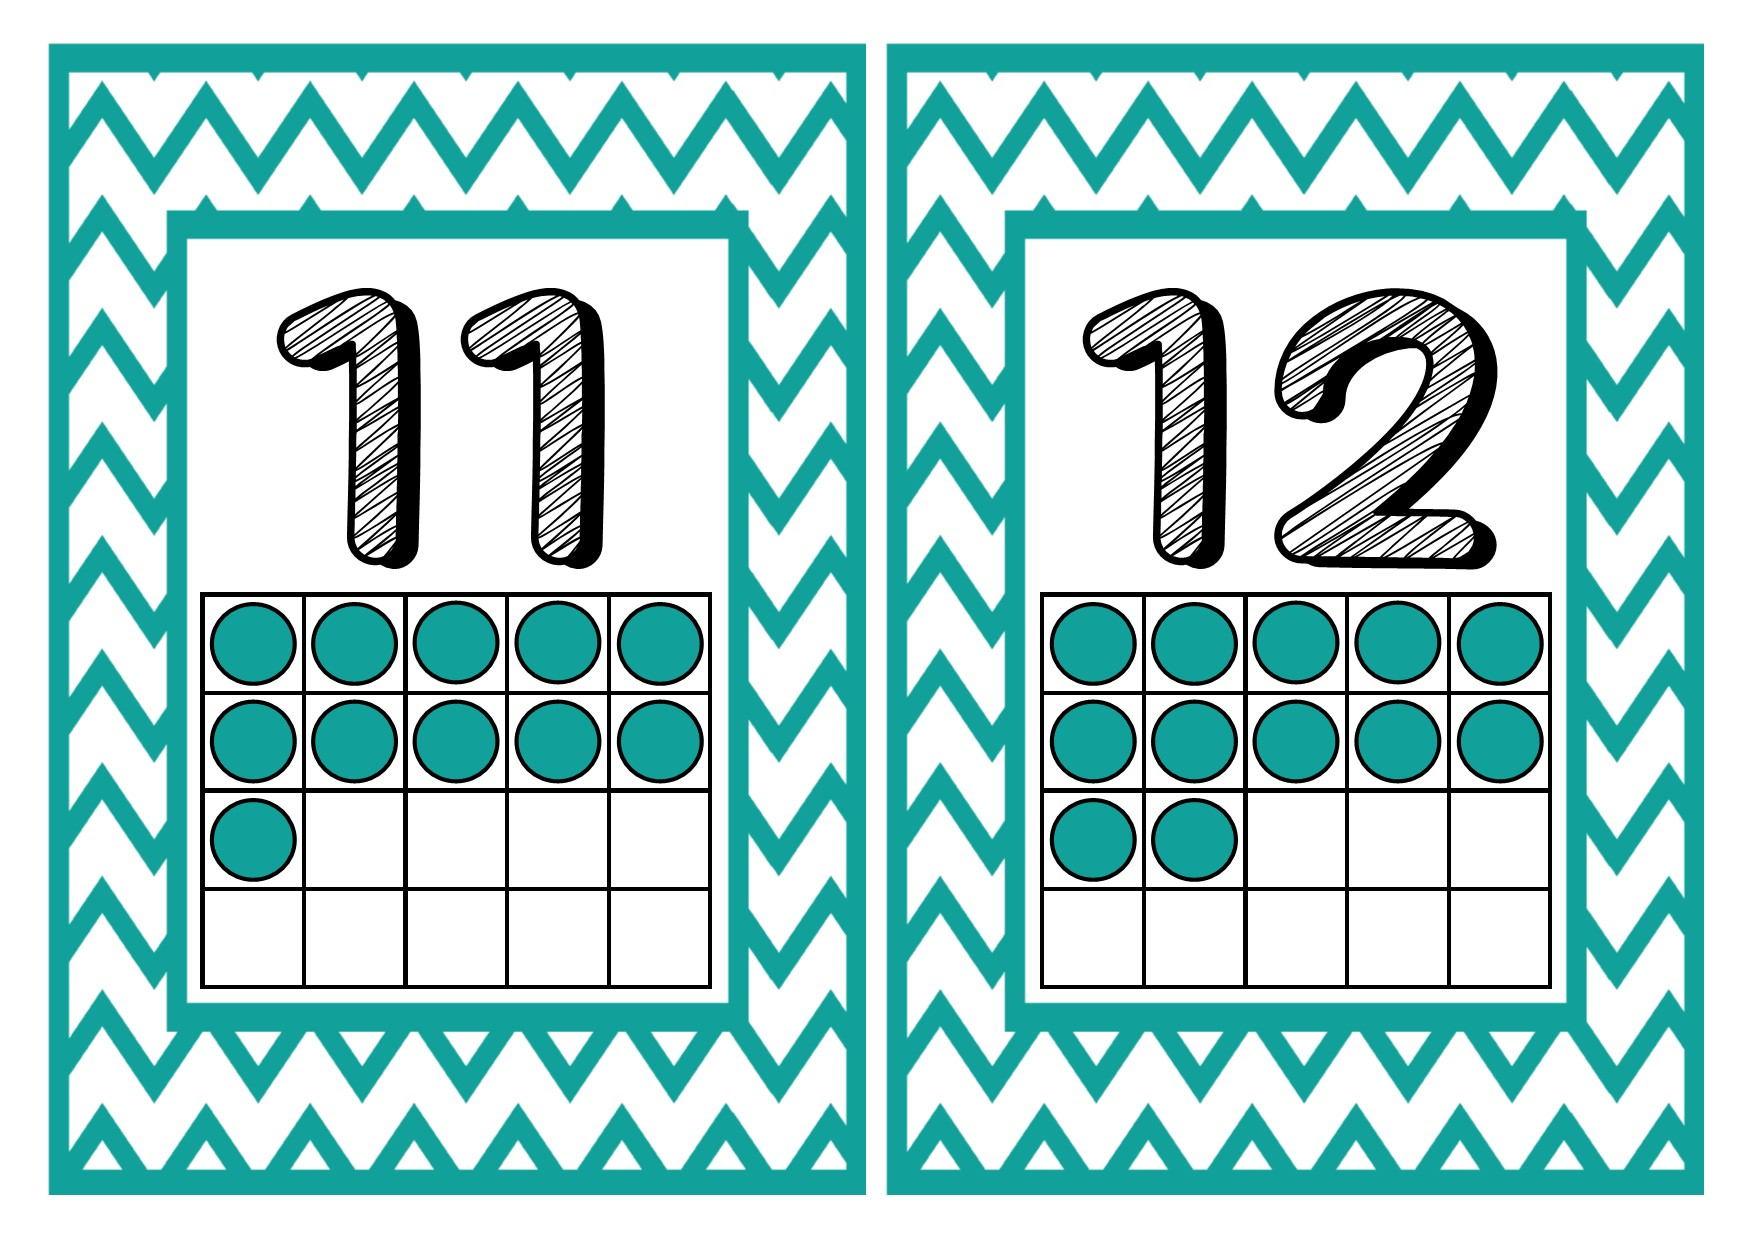 1 20 Number Posters With Counting Frames